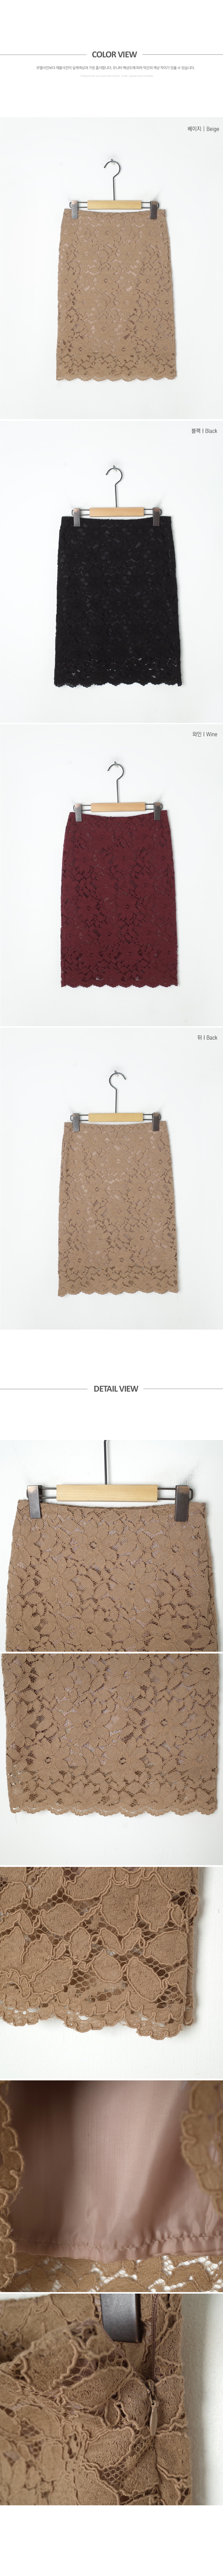 Indulge in a skirt